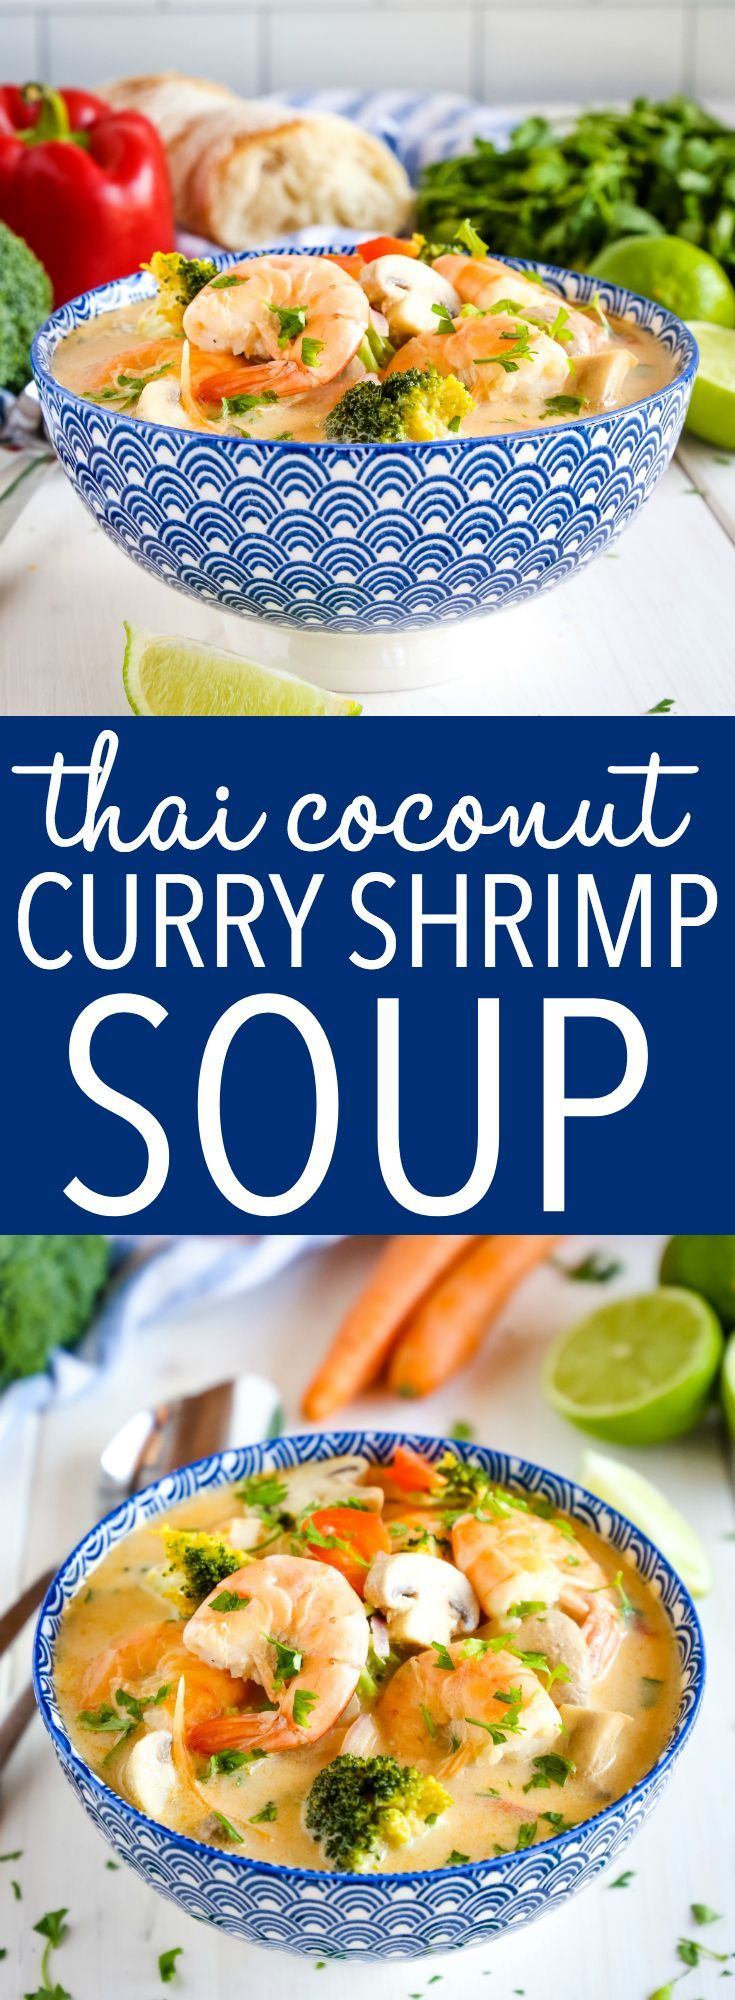 Thai Coconut Curry Shrimp Soup This Thai Coconut Curry Shrimp Soup is packed with vegetables and bursting with Thai flavours! It's dairy-free and comes together in 30 minutes or less! Recipe from ! via @busybakerblog